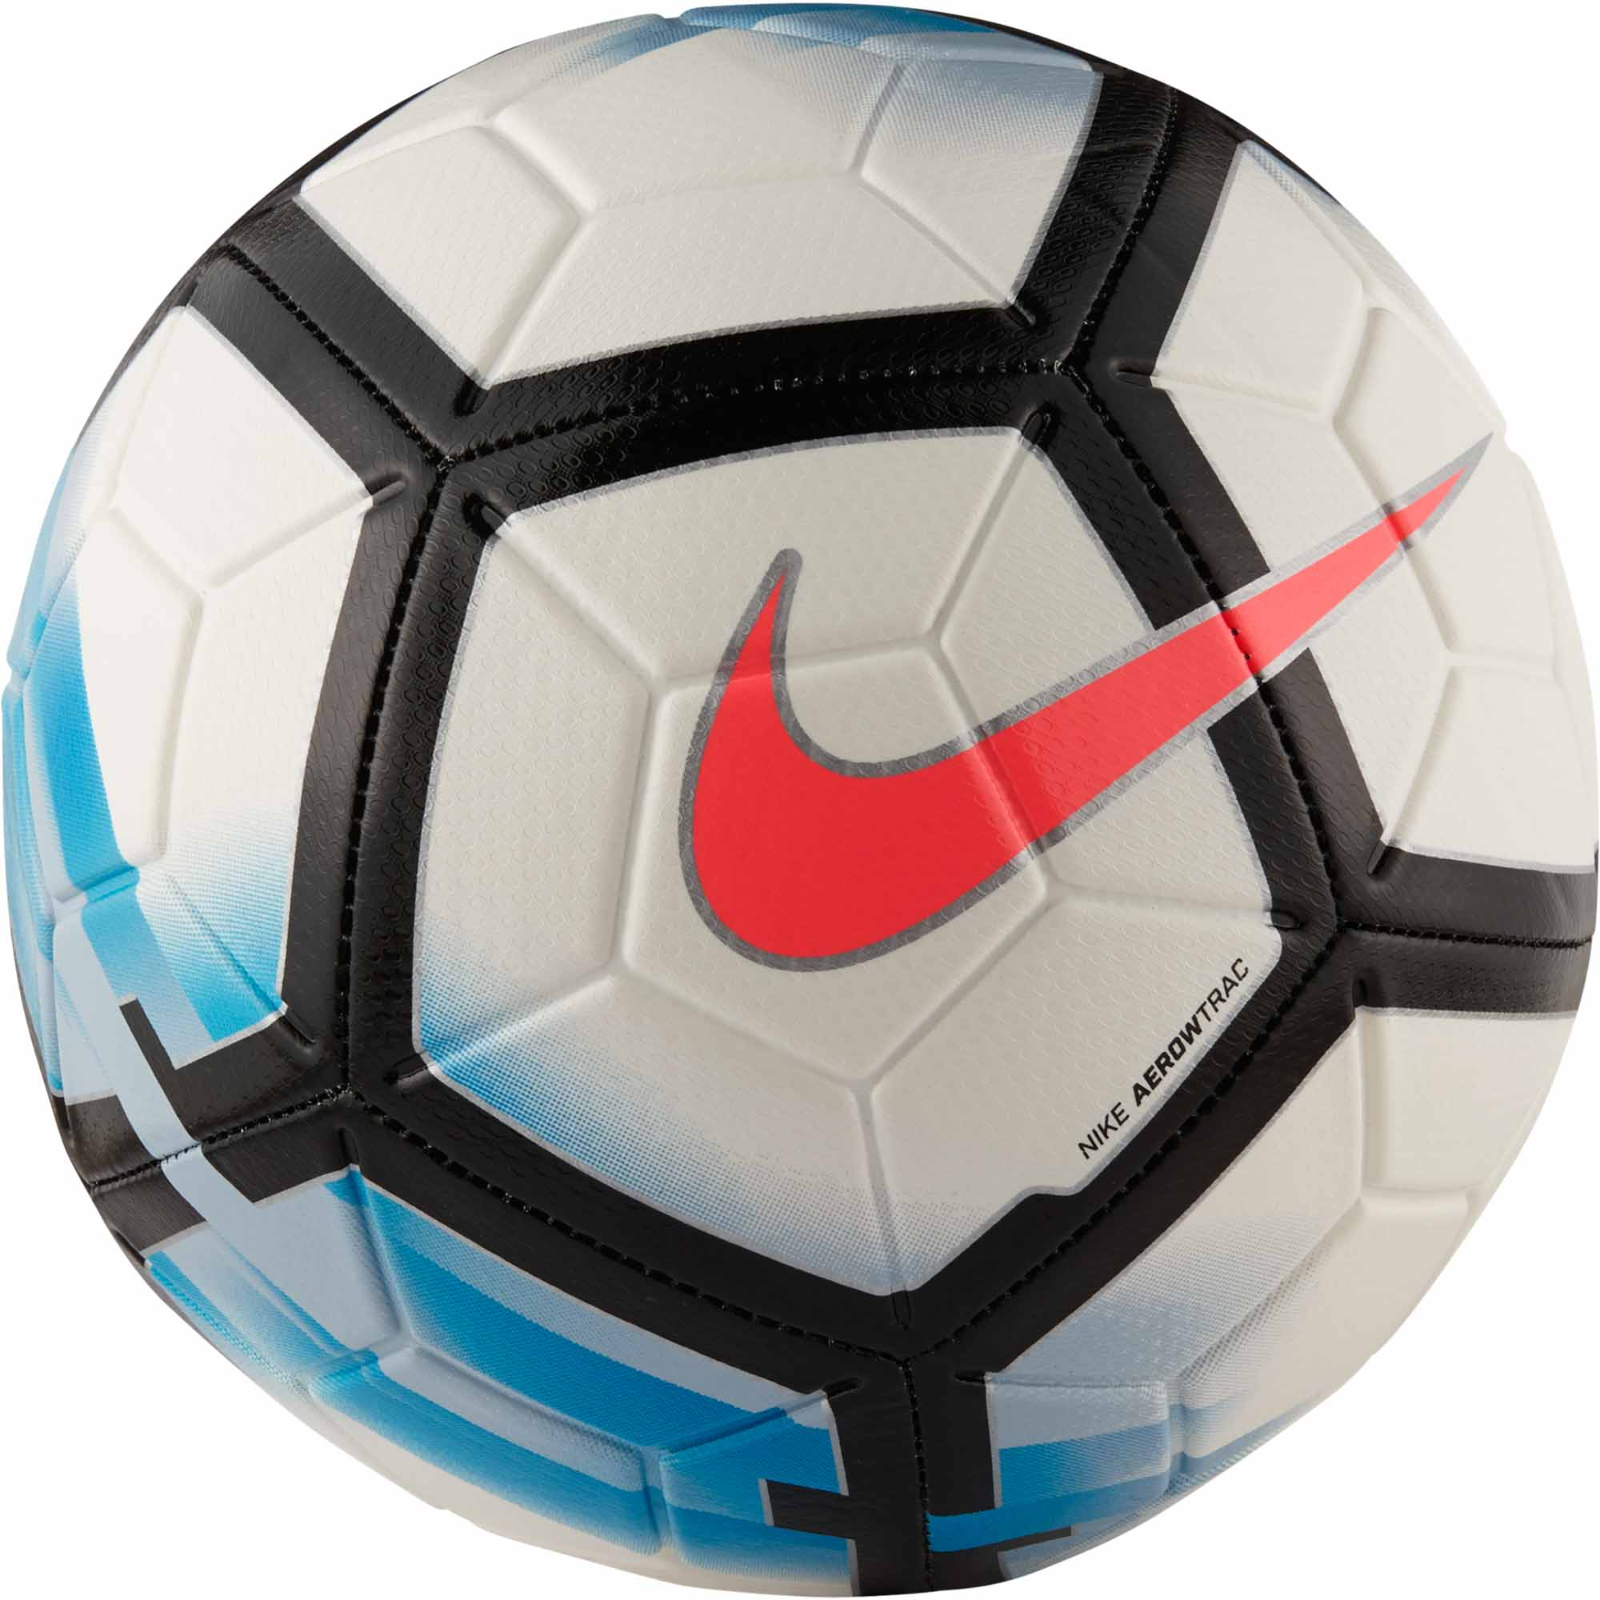 Voluntary Soccer Workouts Begin Next Week April 7th